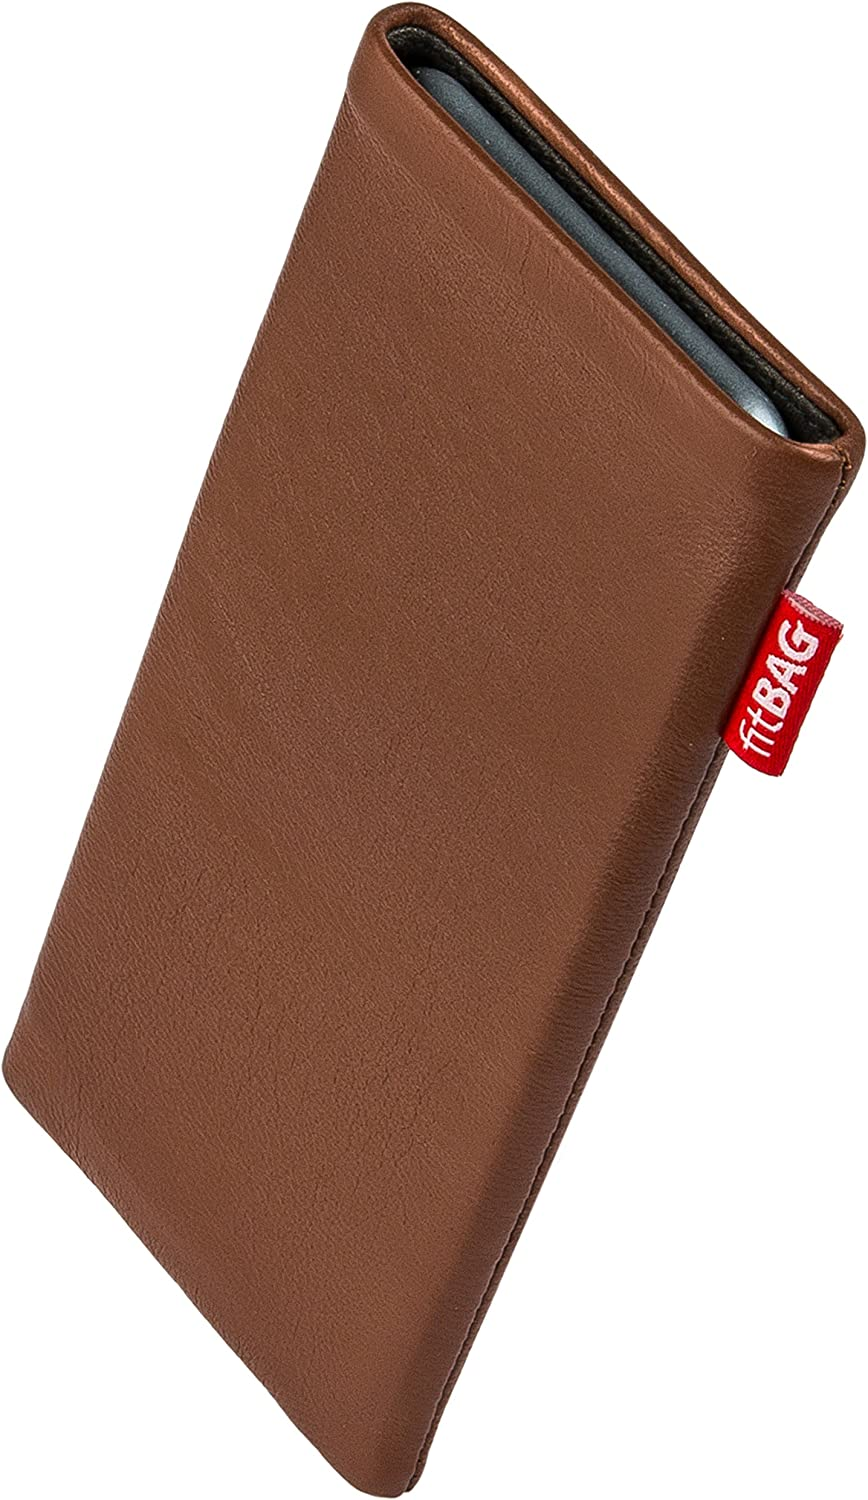 fitBAG Beat Brown Custom Tailored Sleeve for Apple iPhone 8 / SE 2 (2020) | Made in Germany | Fine Nappa Leather Pouch case Cover with Microfibre Lining for Display Cleaning